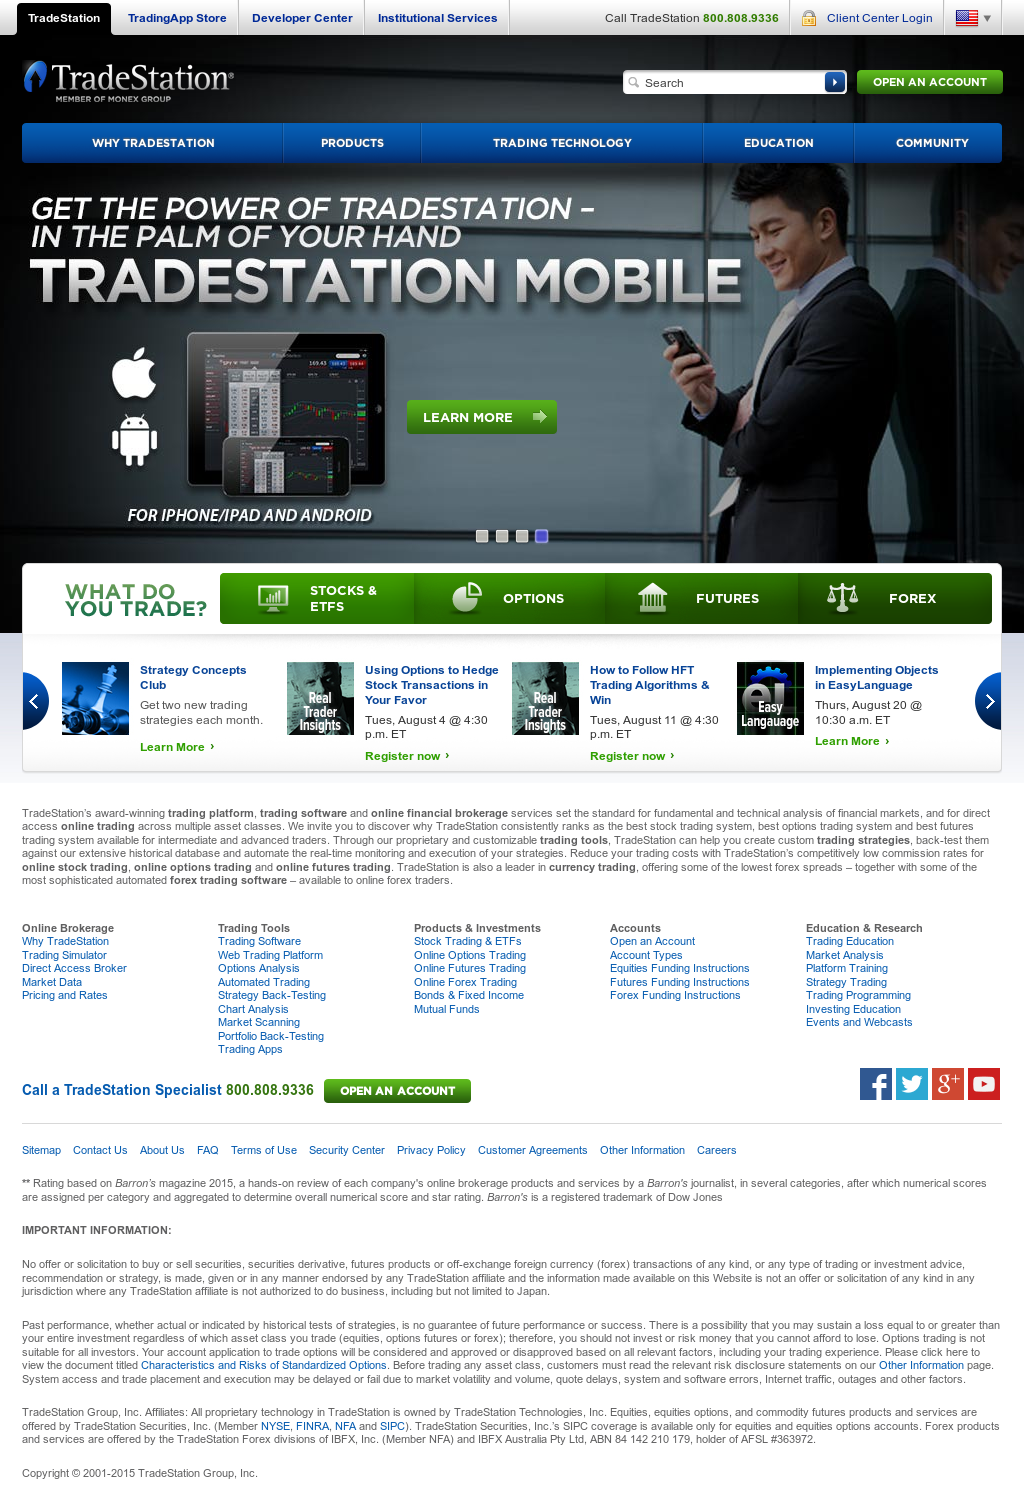 TradeStation Competitors, Revenue and Employees - Owler